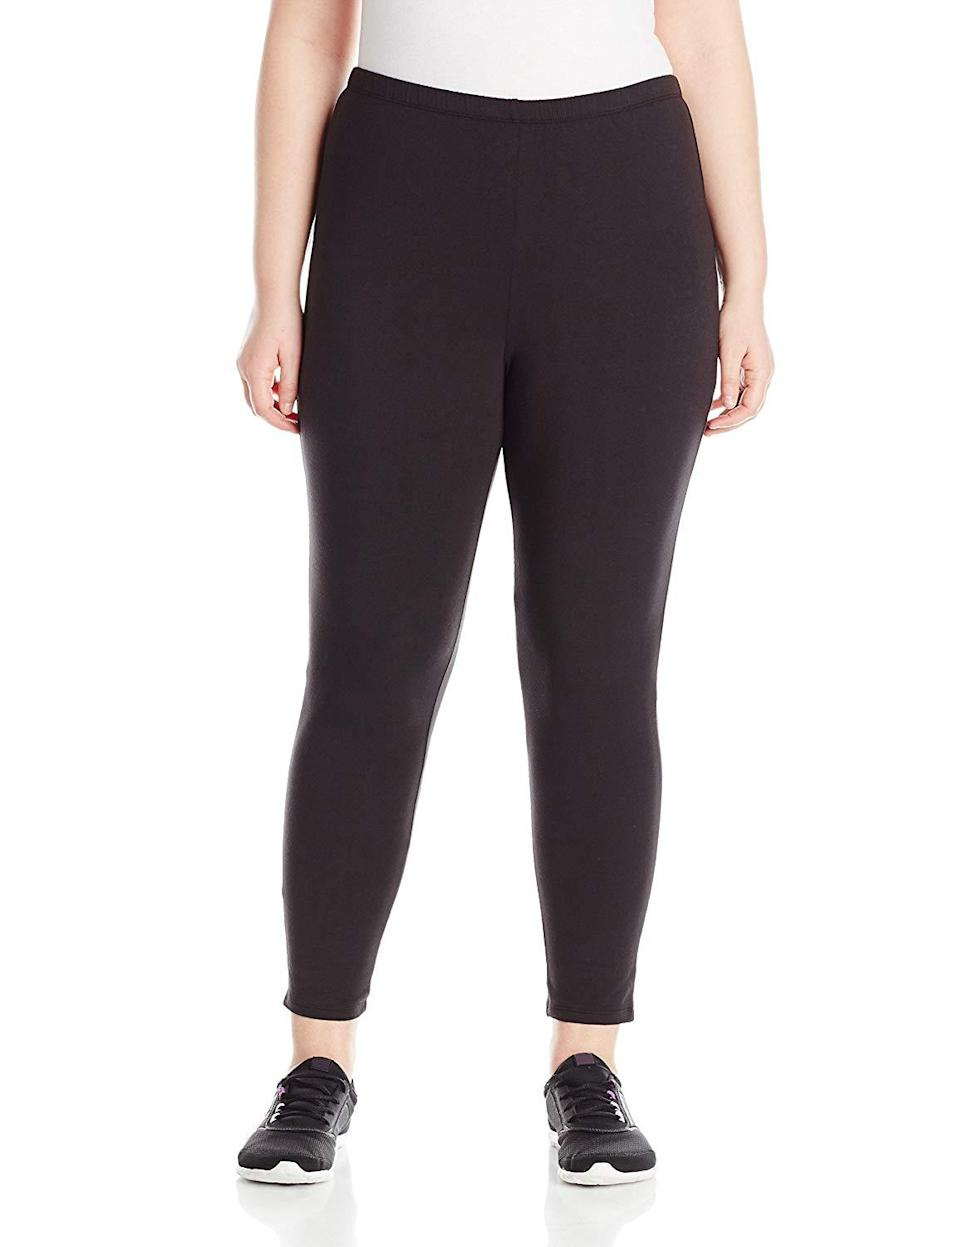 "<h3><a href=""https://www.amazon.com/Just-My-Size-Plus-Size-Stretch/dp/B01B3IT512/"" rel=""nofollow noopener"" target=""_blank"" data-ylk=""slk:Just My Size Plus-Size Jersey Legging"" class=""link rapid-noclick-resp"">Just My Size Plus-Size Jersey Legging</a> </h3><br><br>4.3 out of 5 stars and 2,740 reviews<br><br><strong>Promising Review: </strong>Consider this pair your new go-to for casual wear. <a href=""https://www.amazon.com/gp/customer-reviews/R10VNC1MXTDNDC/"" rel=""nofollow noopener"" target=""_blank"" data-ylk=""slk:One reviewer says"" class=""link rapid-noclick-resp"">One reviewer says </a> she lives in them because they don't fade with each wash. She also suggests this pair for shorter women: ""They are not paper thin like a lot of leggings. They have a little body to them, don't show every little 'bump' and are the perfect length for a short person. I like ankle length and that's where they come on me. I hope this style stays on Amazon so I can find them when I need them again.""<br><br><strong>Just My Size</strong> Plus-Size Stretch Jersey Legging, $, available at <a href=""https://www.amazon.com/Just-My-Size-Plus-Size-Stretch/dp/B01B3IT512/"" rel=""nofollow noopener"" target=""_blank"" data-ylk=""slk:Amazon"" class=""link rapid-noclick-resp"">Amazon</a>"